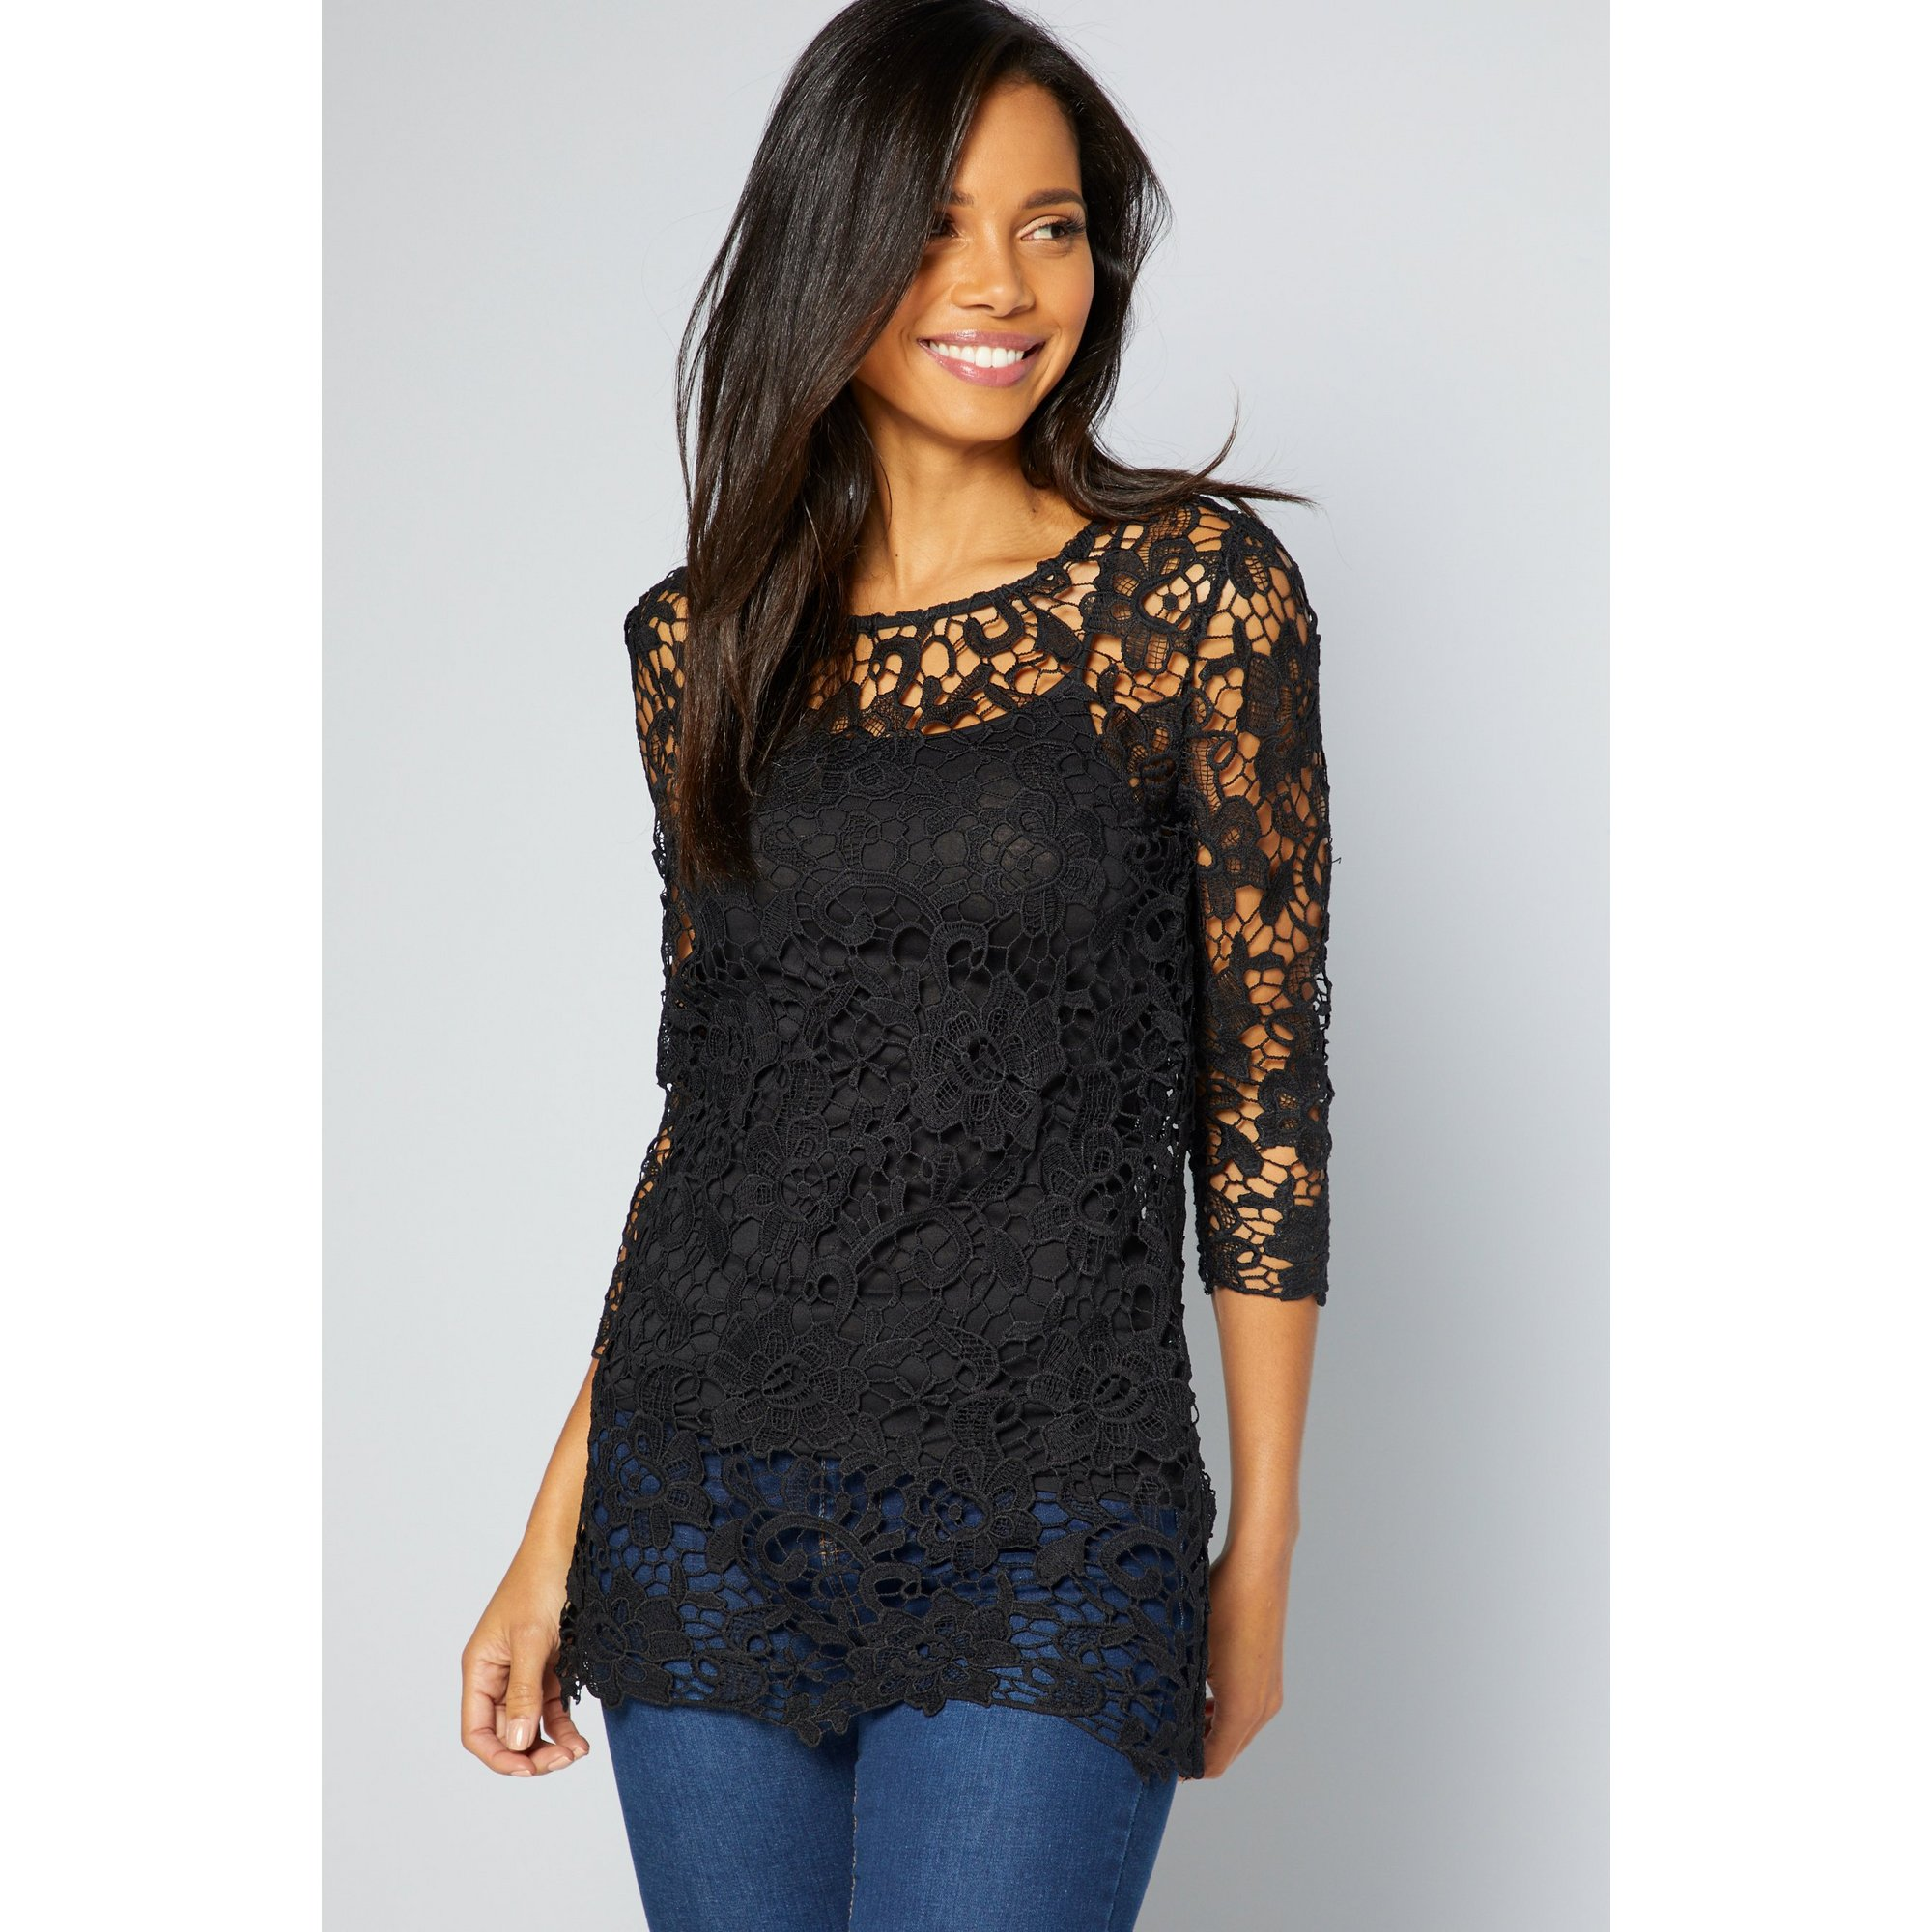 Image of 3/4 Sleeve Black Crochet Lace Top